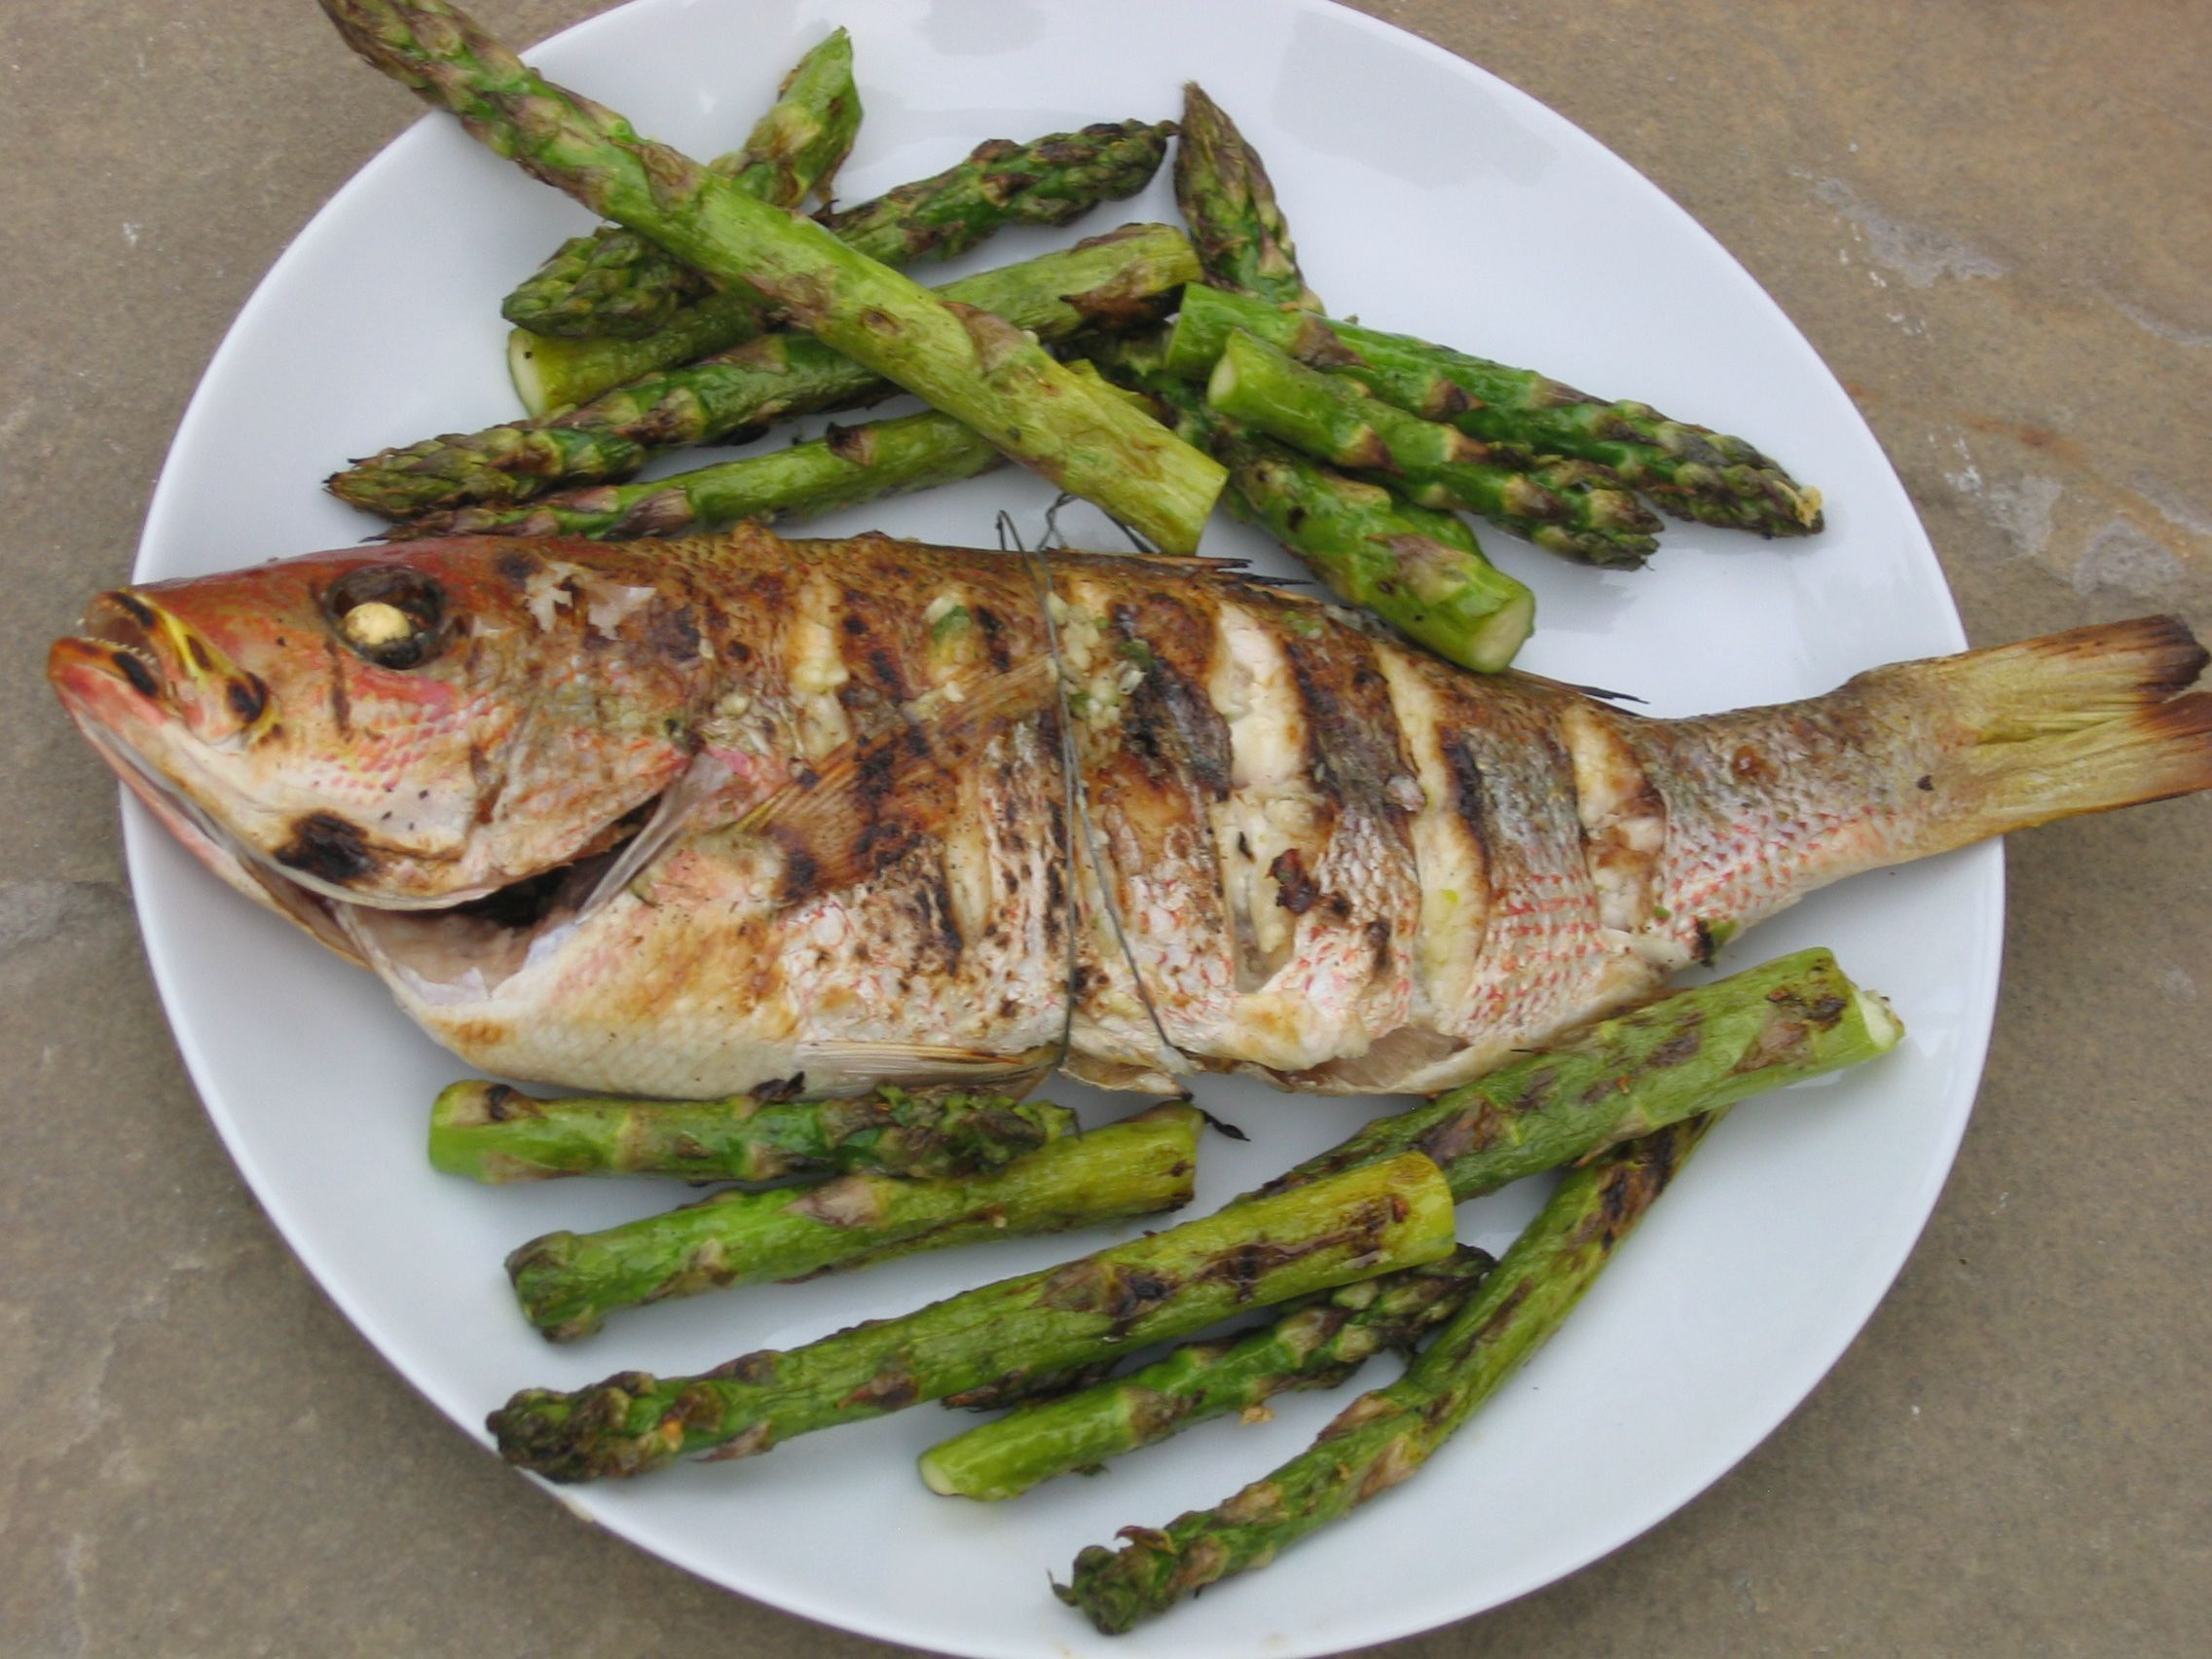 Whole fish on the grill elizabeth yarnell naturopathic for Fish and grill